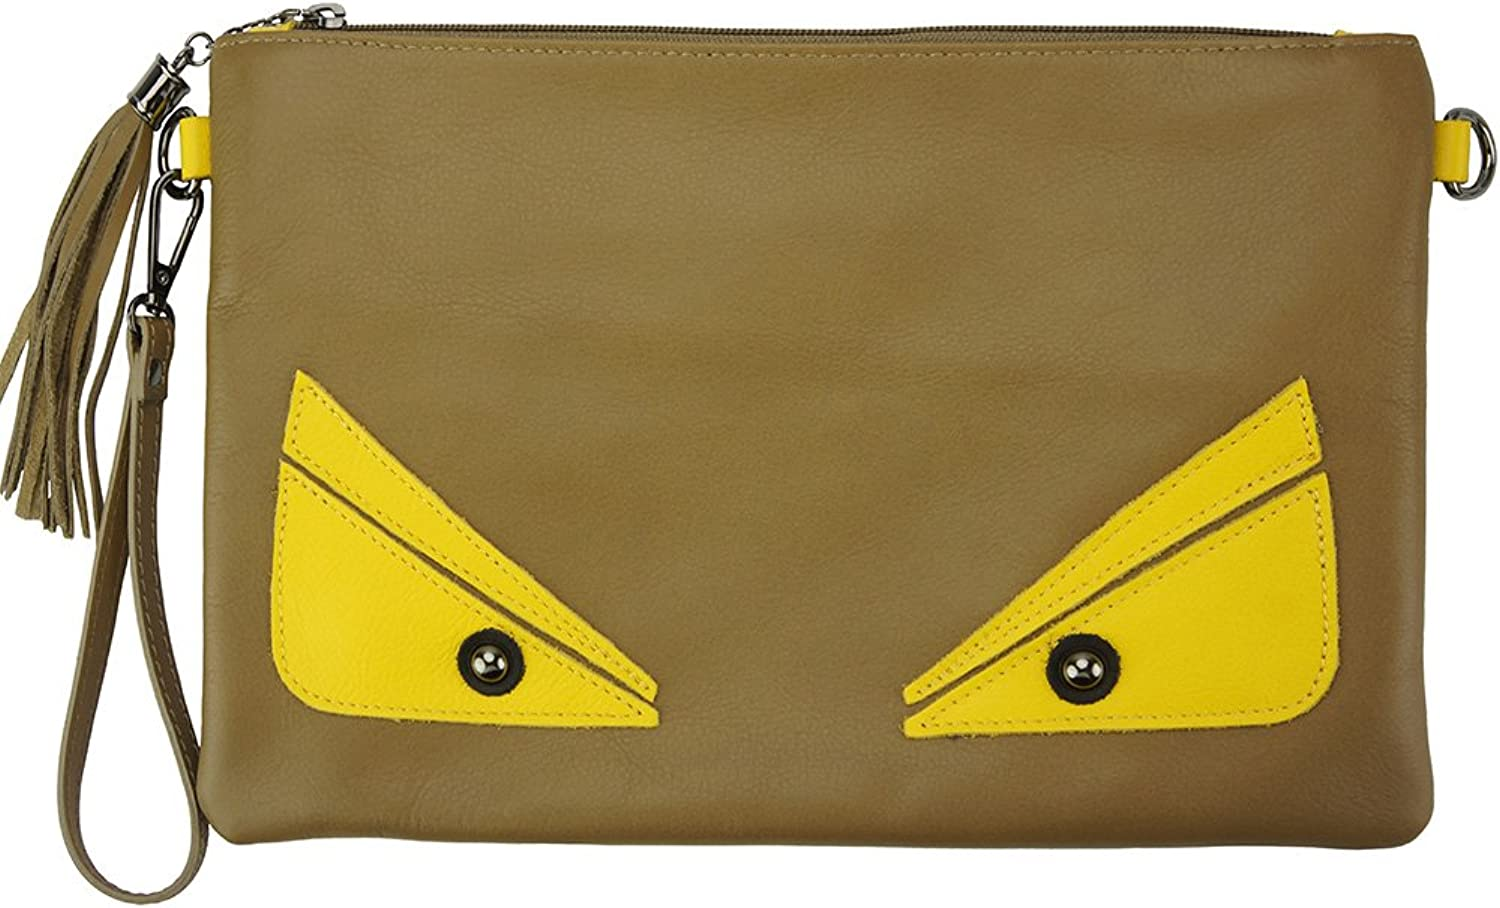 Florence Leather Market TEODORA CLUTCH AUS KALBSLEDER MADE MADE MADE IN ITALY 6128 (Dunkelgrau taupe) B074S5P4RZ  Creative 2fe117